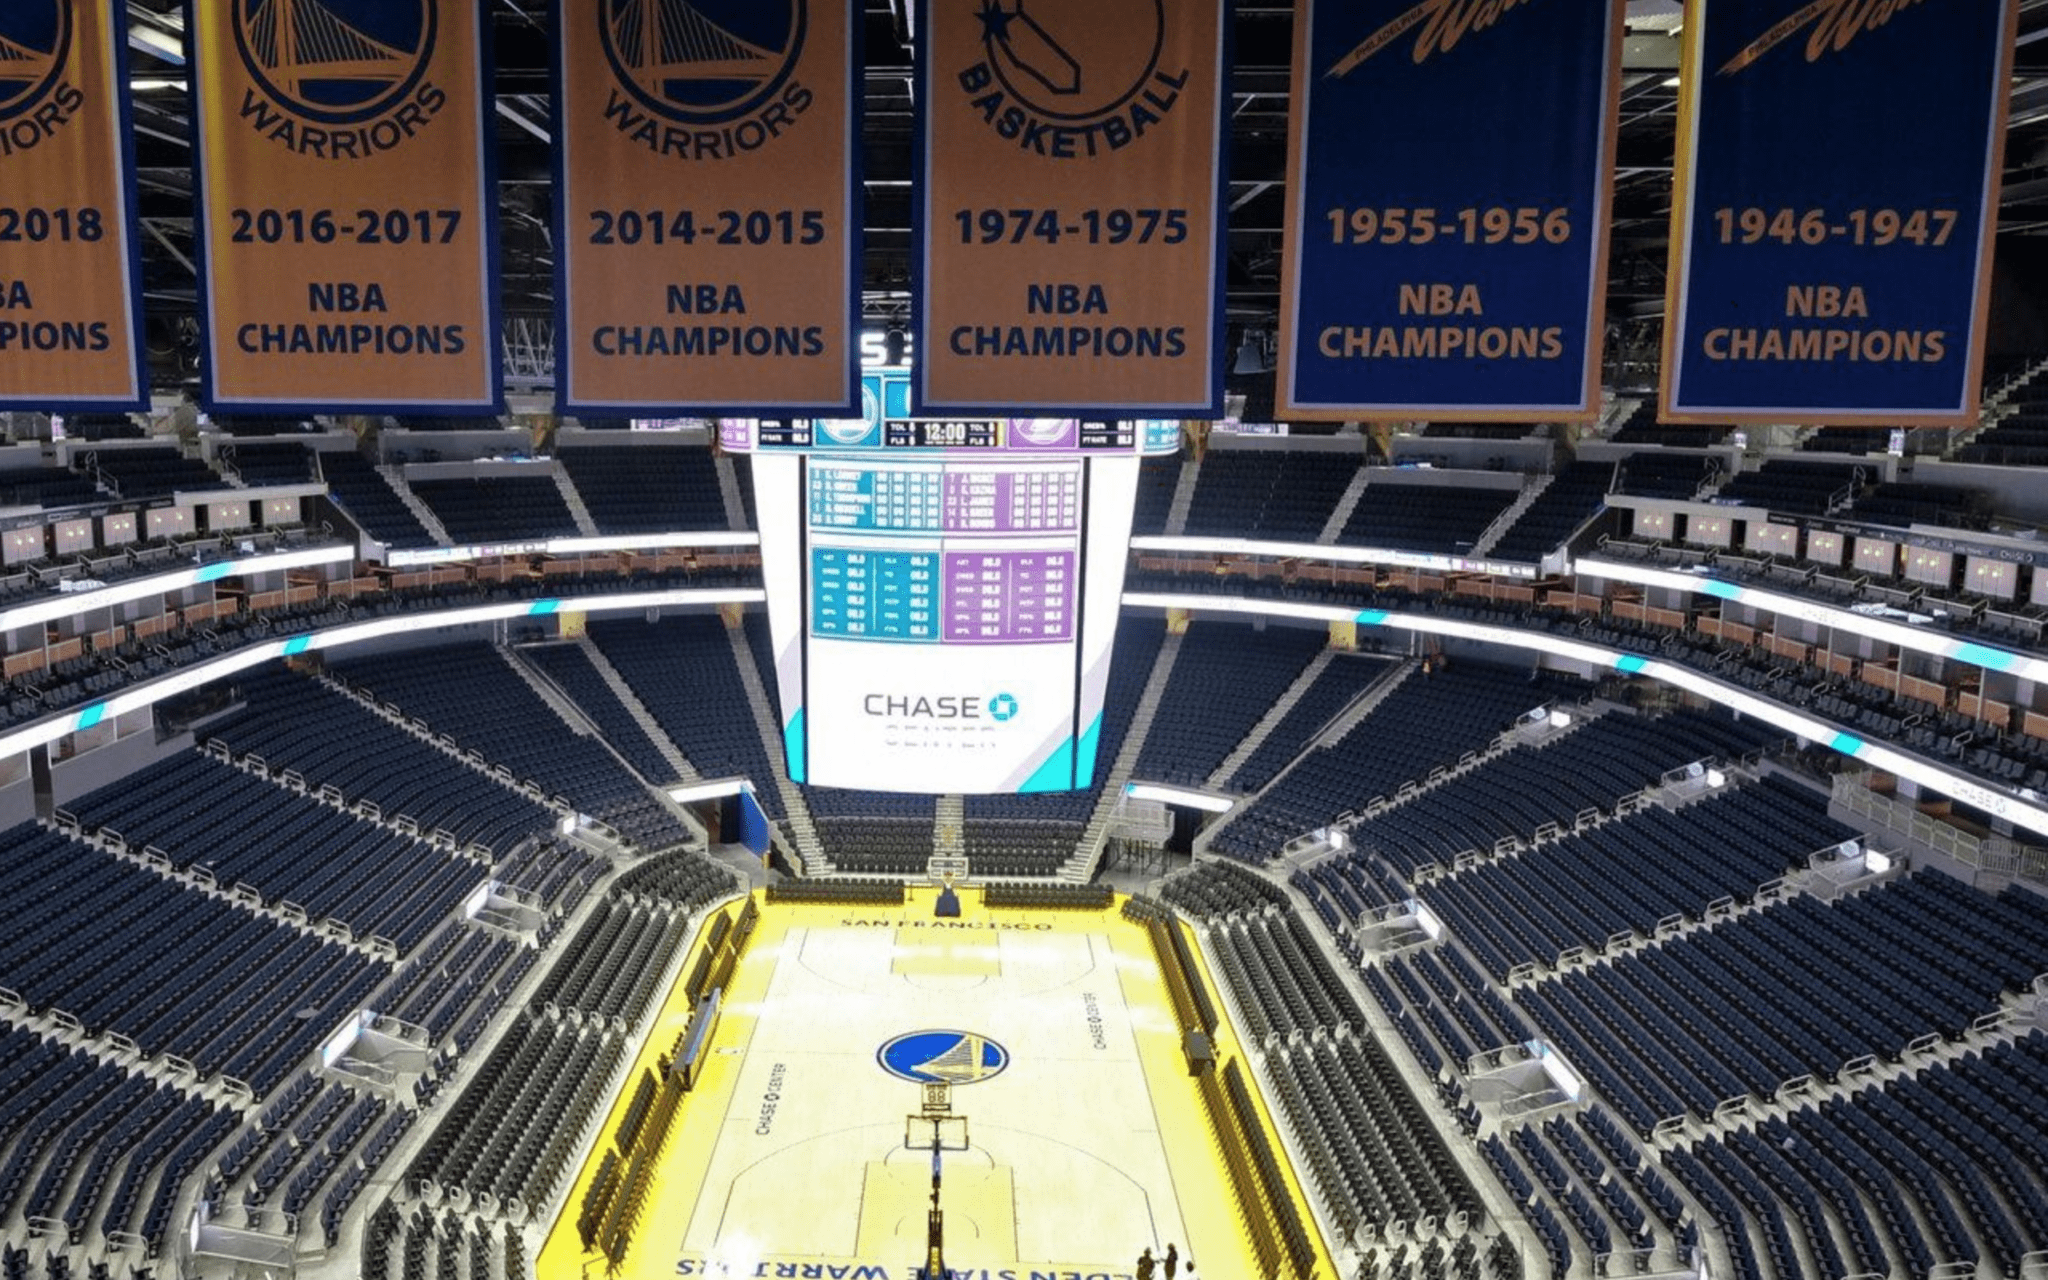 NBA Players' Association Expects No Fans at Games in 2020-21